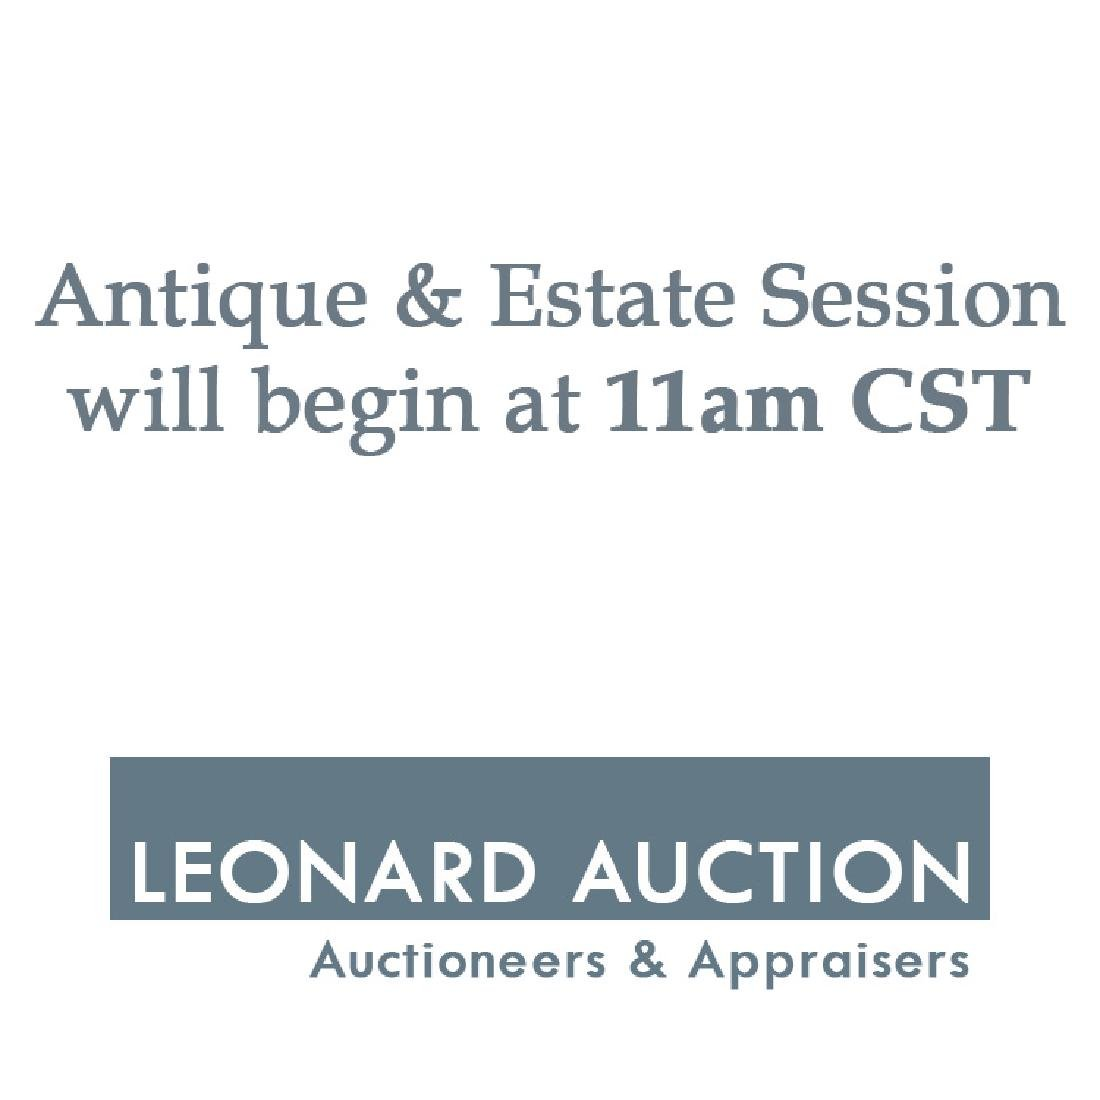 The Antique & Estate Session Begins at 11am CST